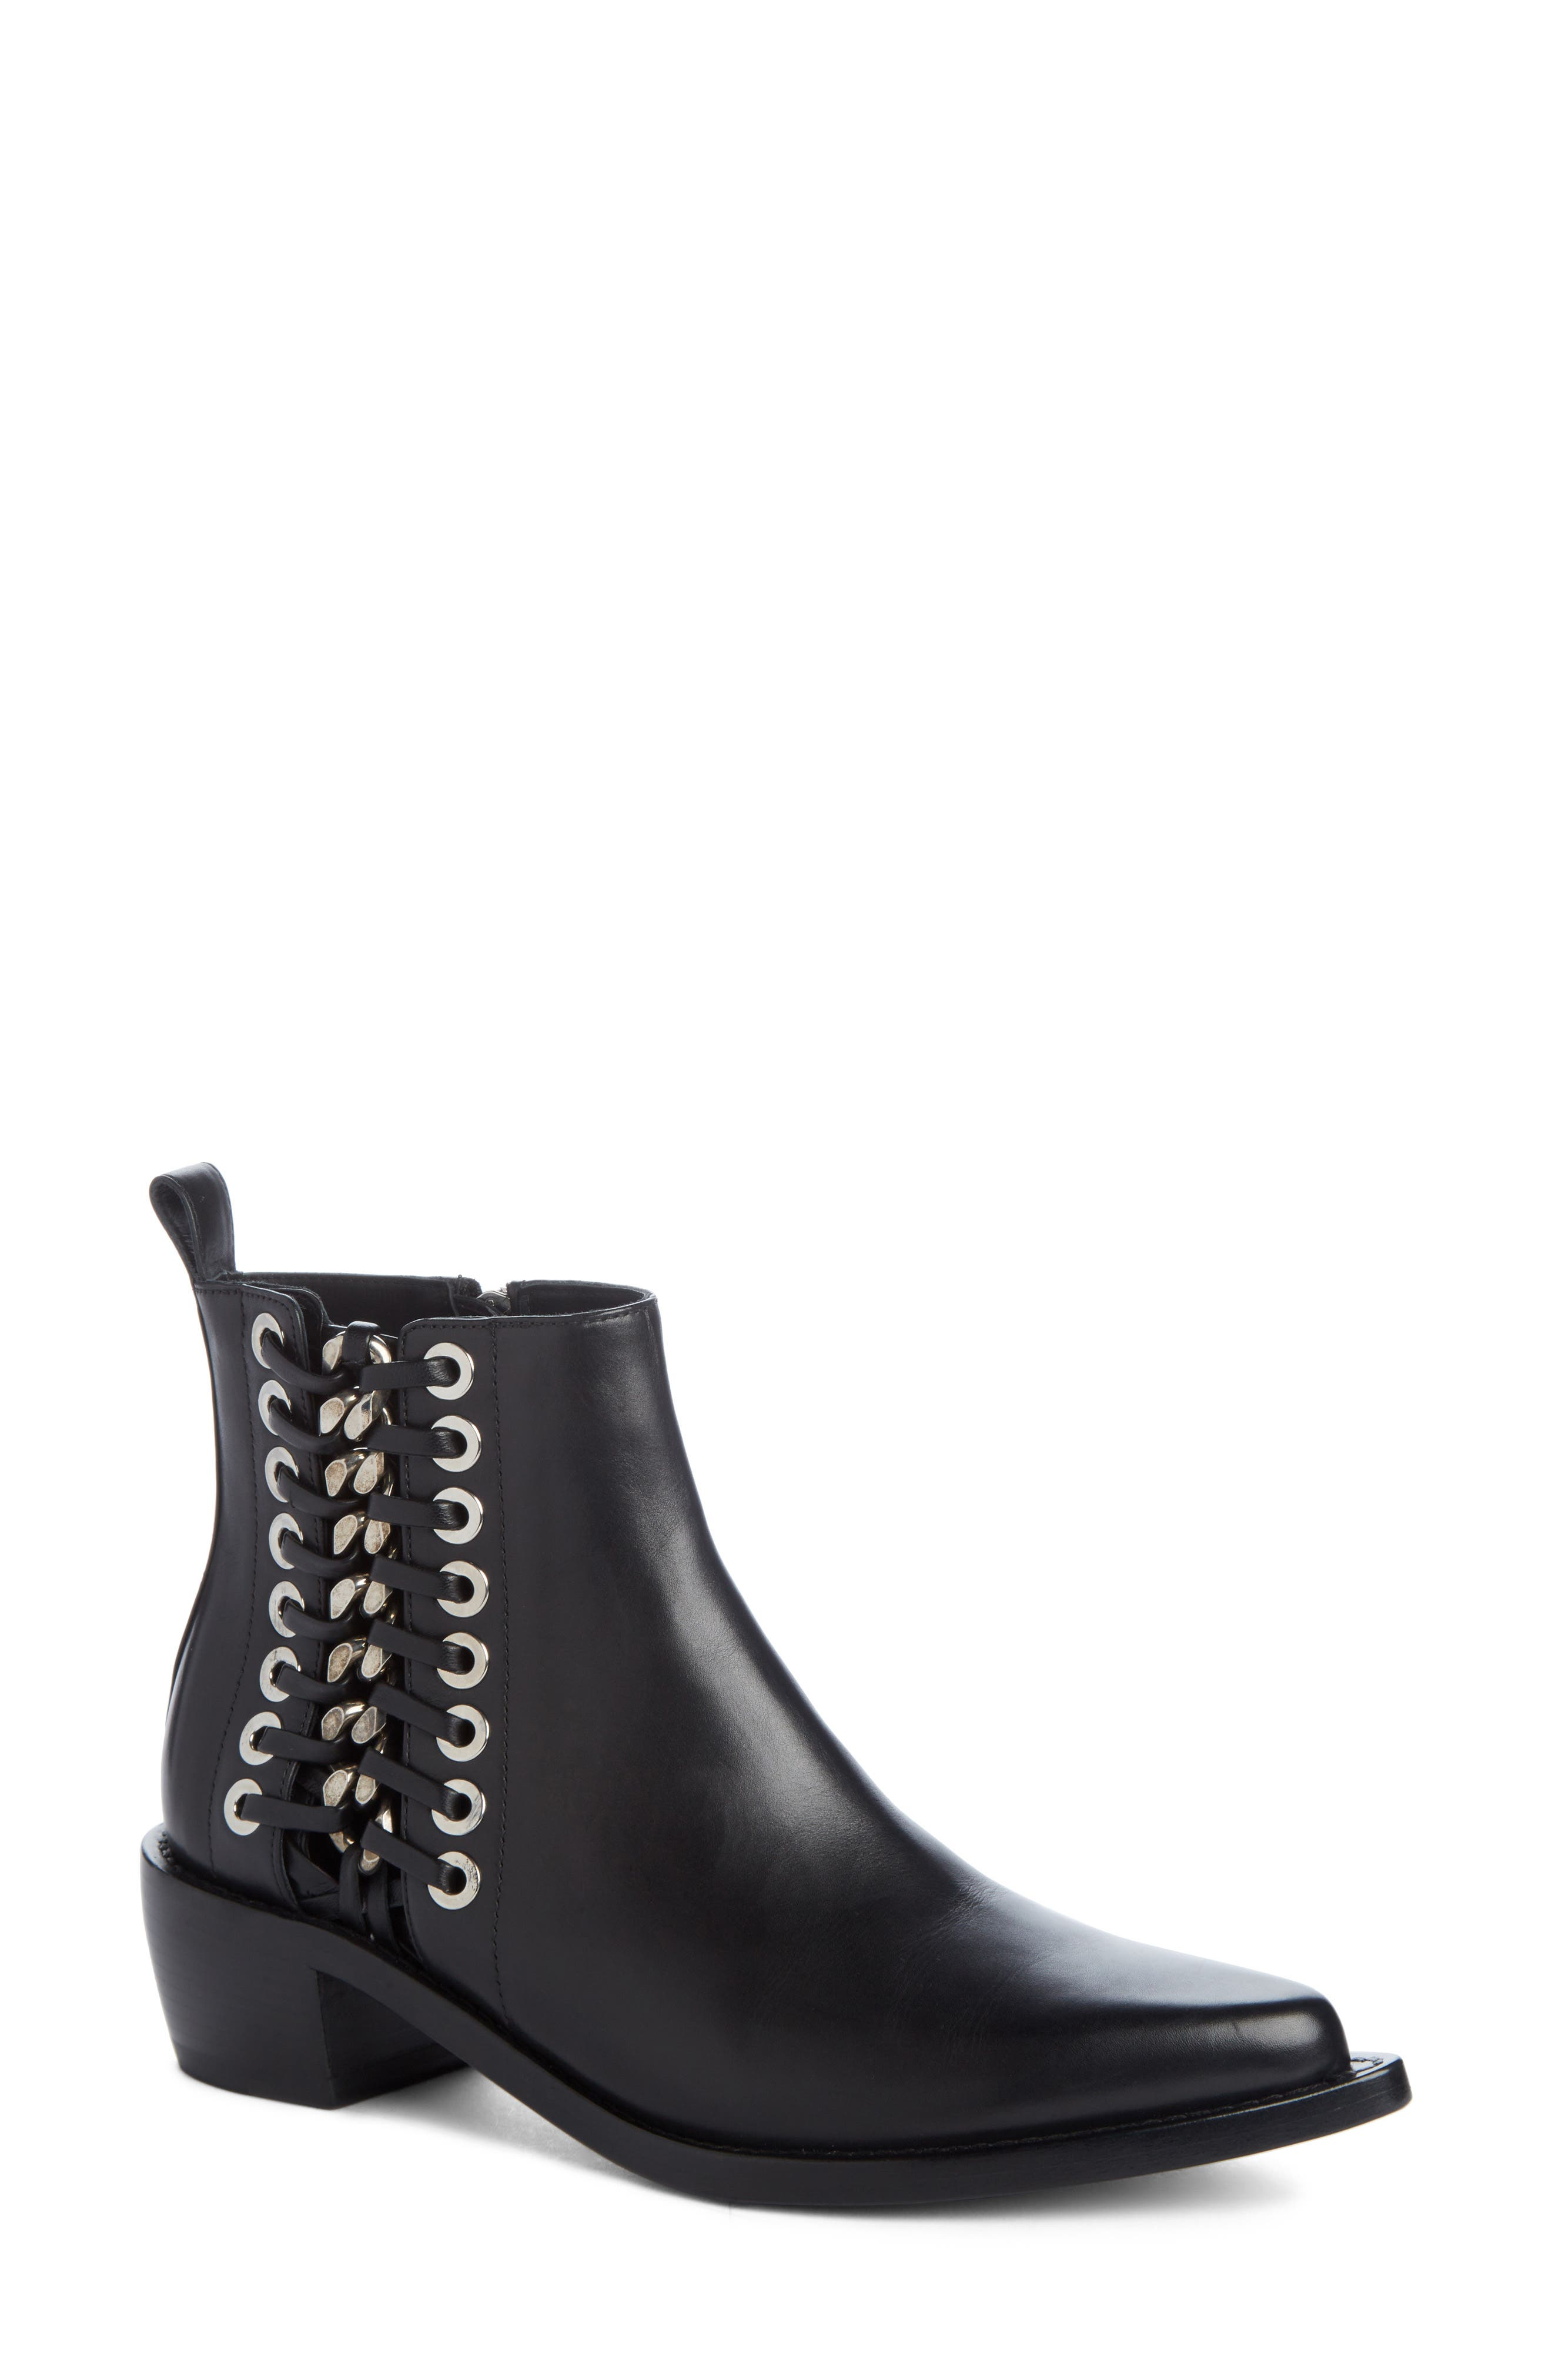 Braided Chain Boot,                             Main thumbnail 1, color,                             Black/ Silver